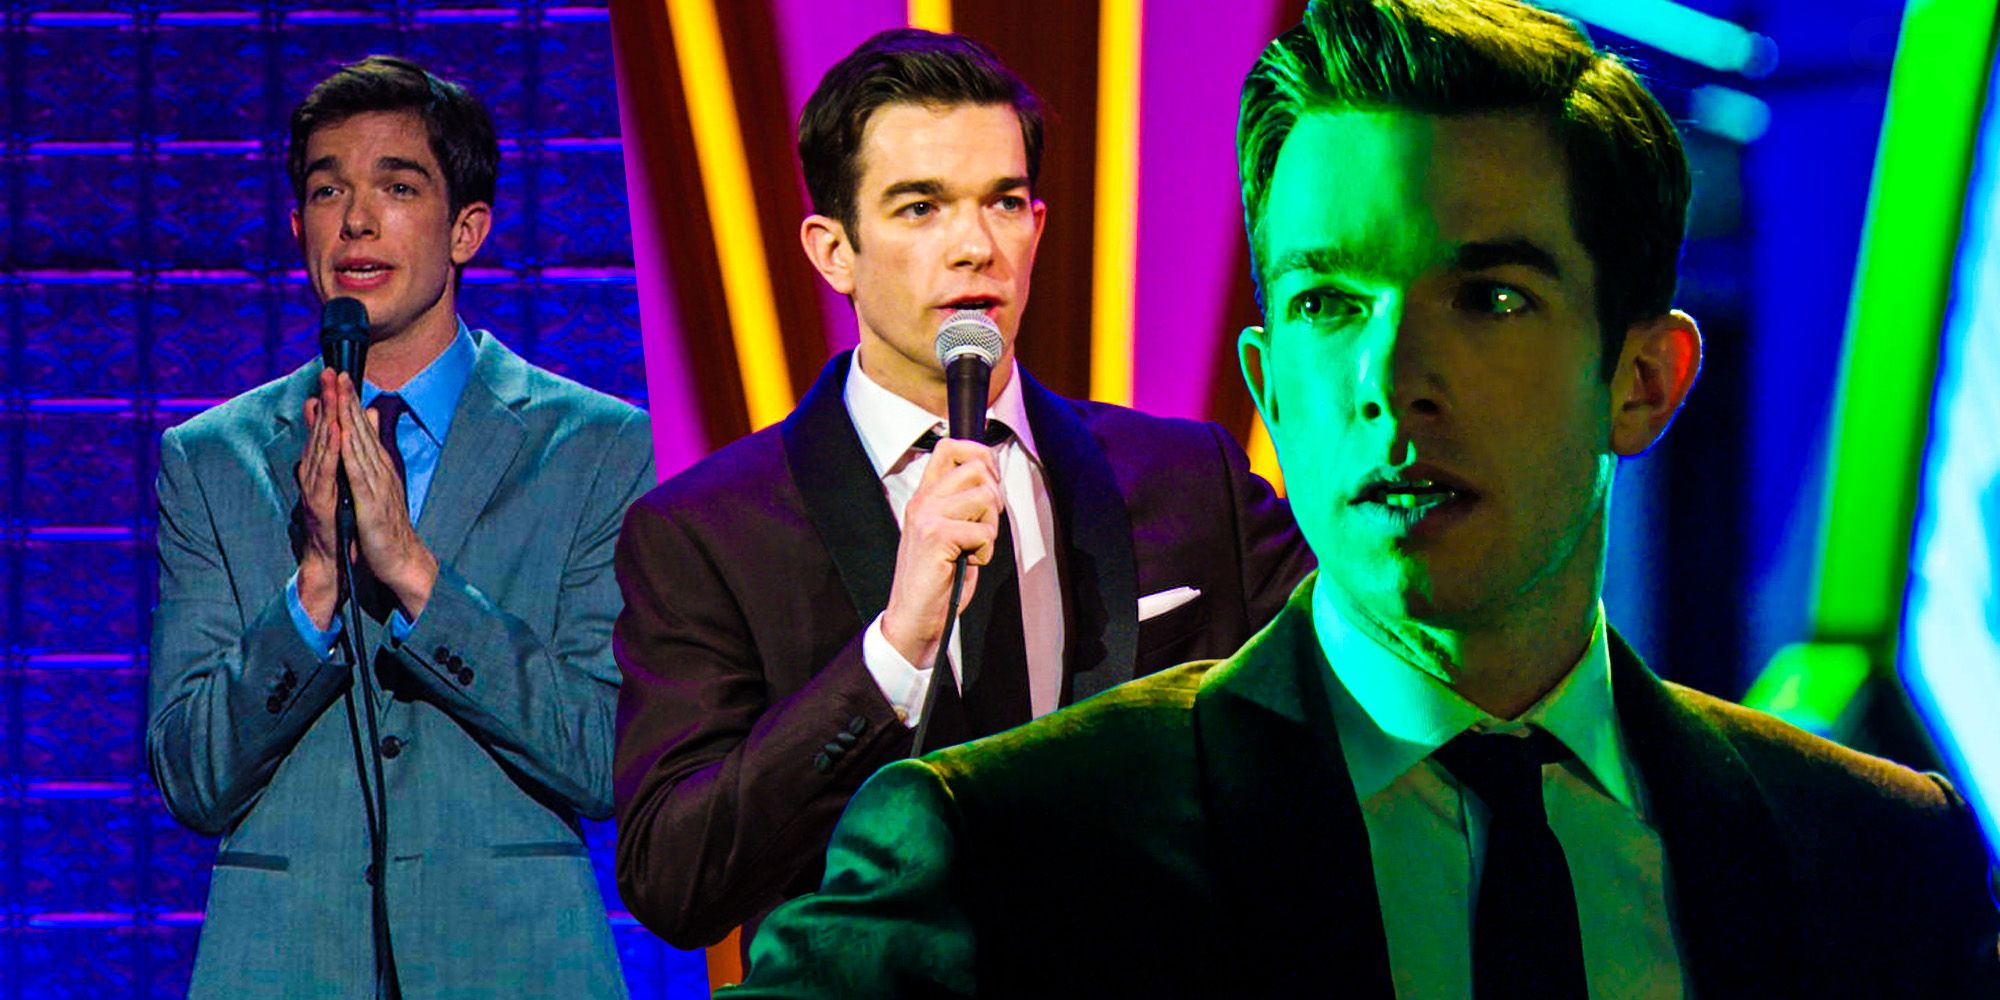 Every John Mulaney Stand-Up Comedy Special & Where To Watch - Screen Rant